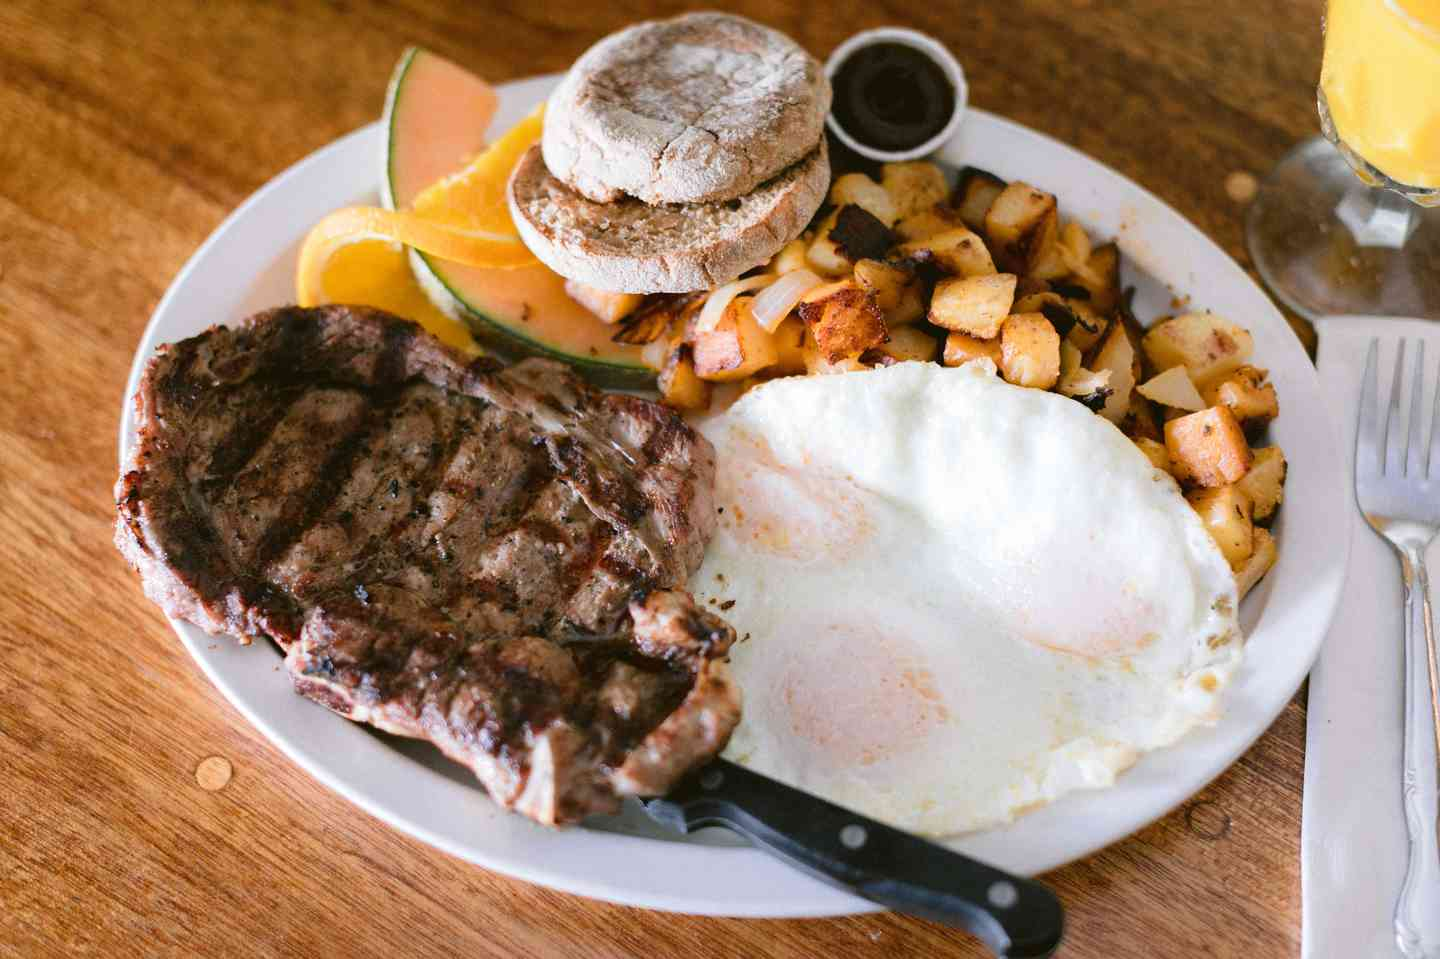 Ribeye Steak 'n Eggs